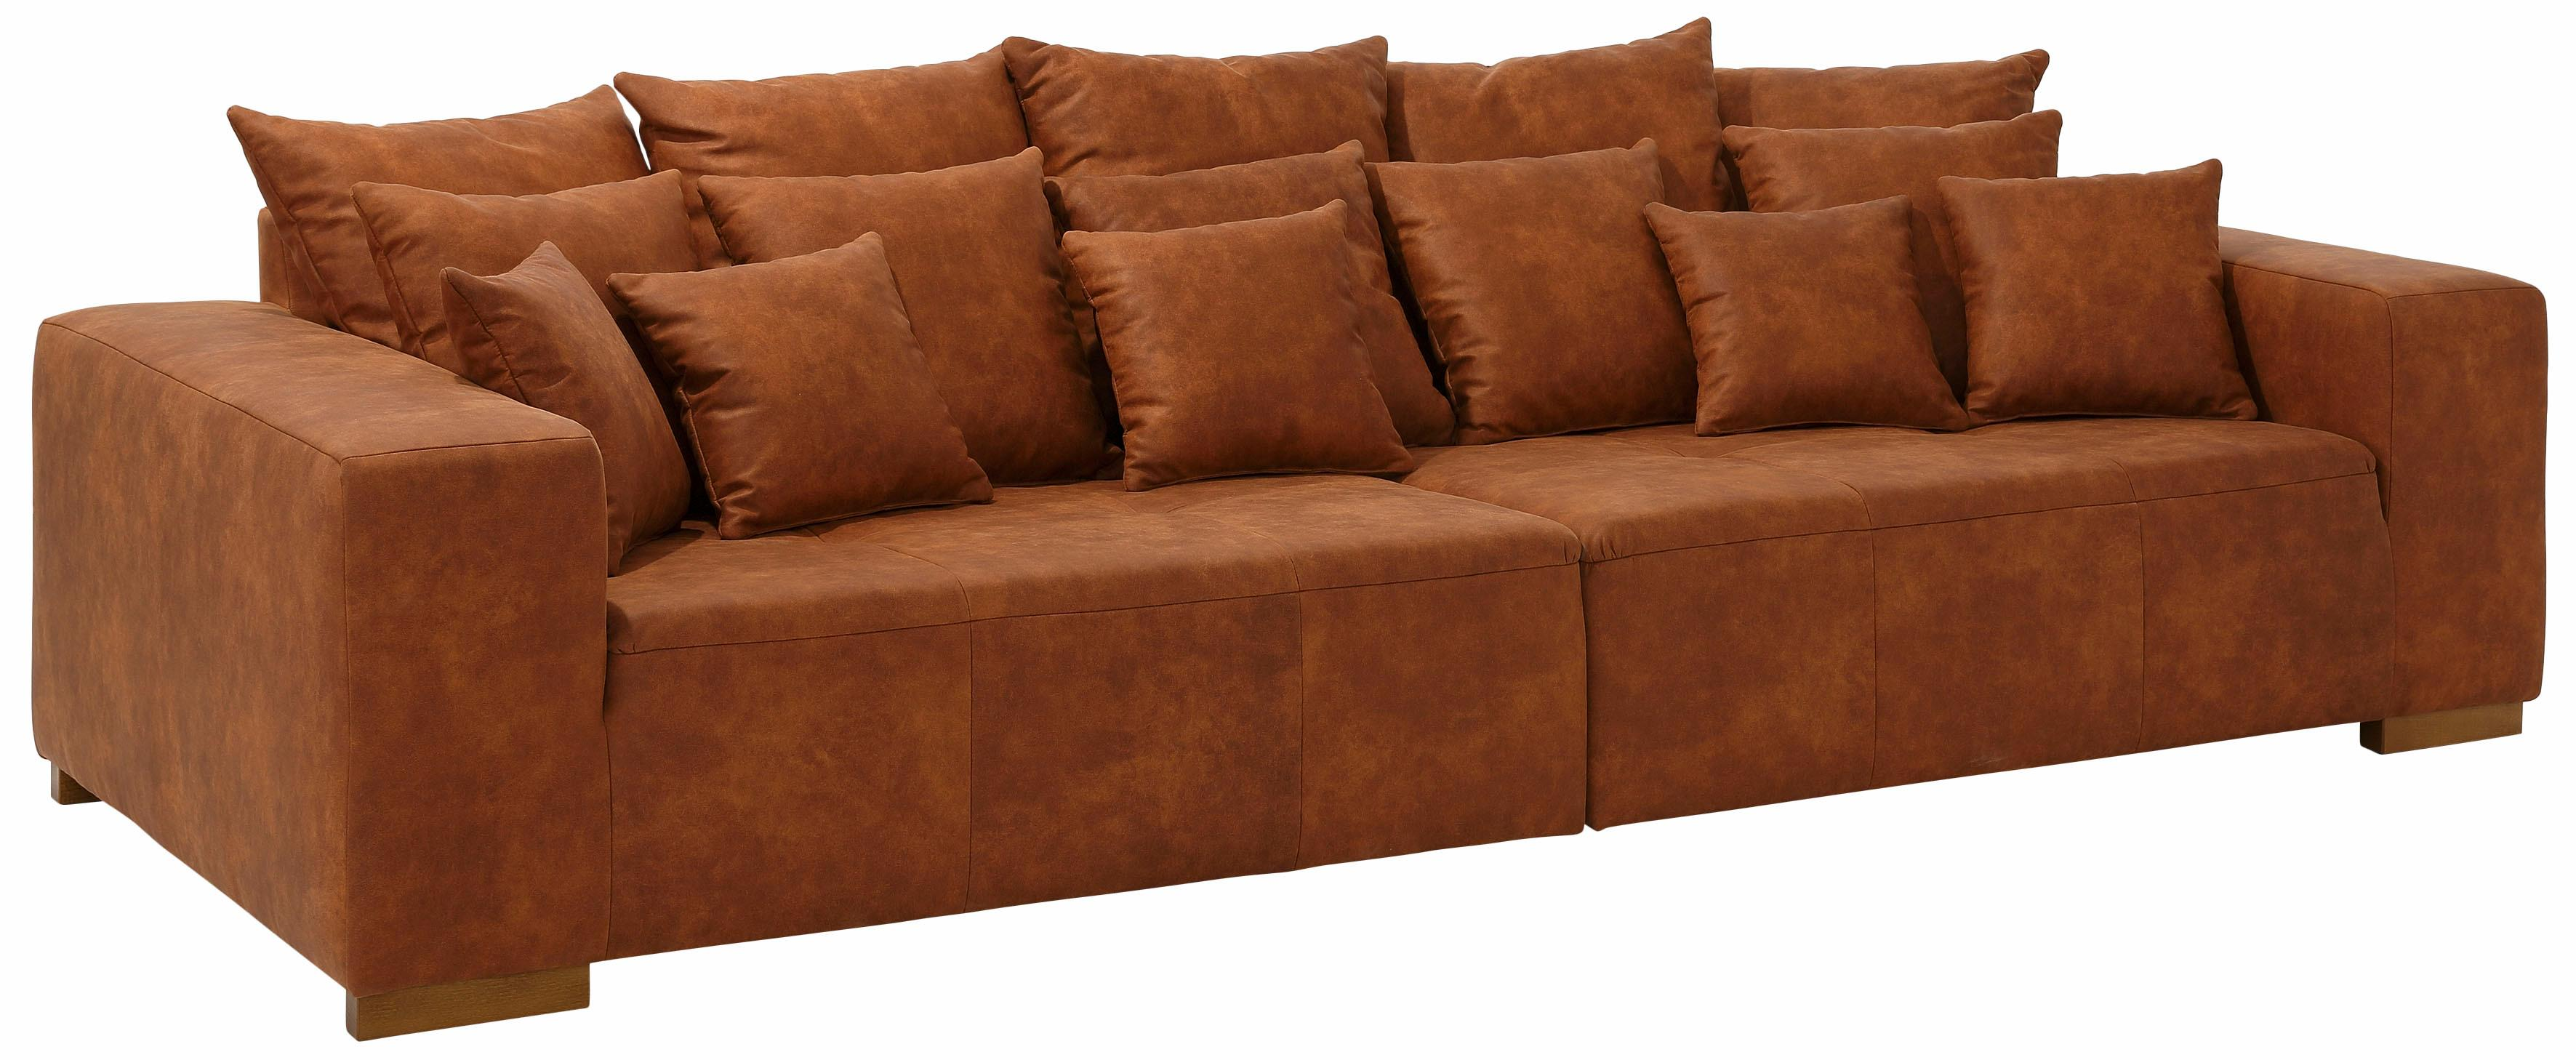 Home affaire Big-Sofa Neapel